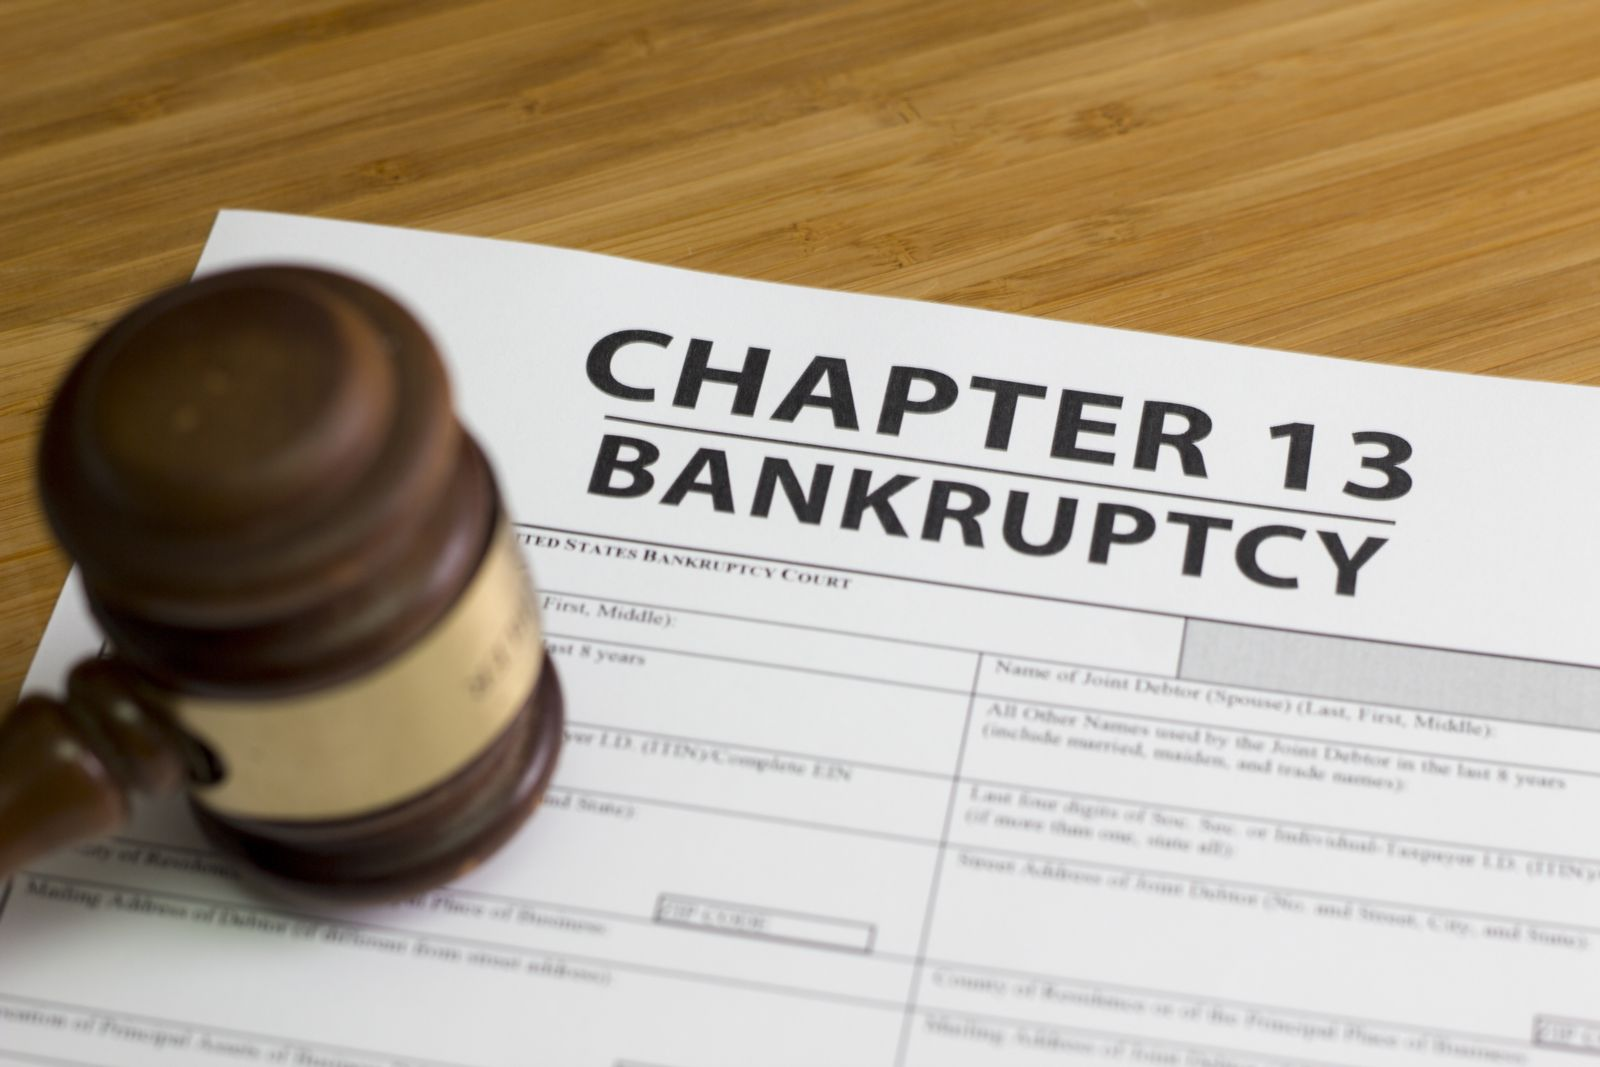 Chapter 13 Bankruptcy Attorneys in Dallas, Texas